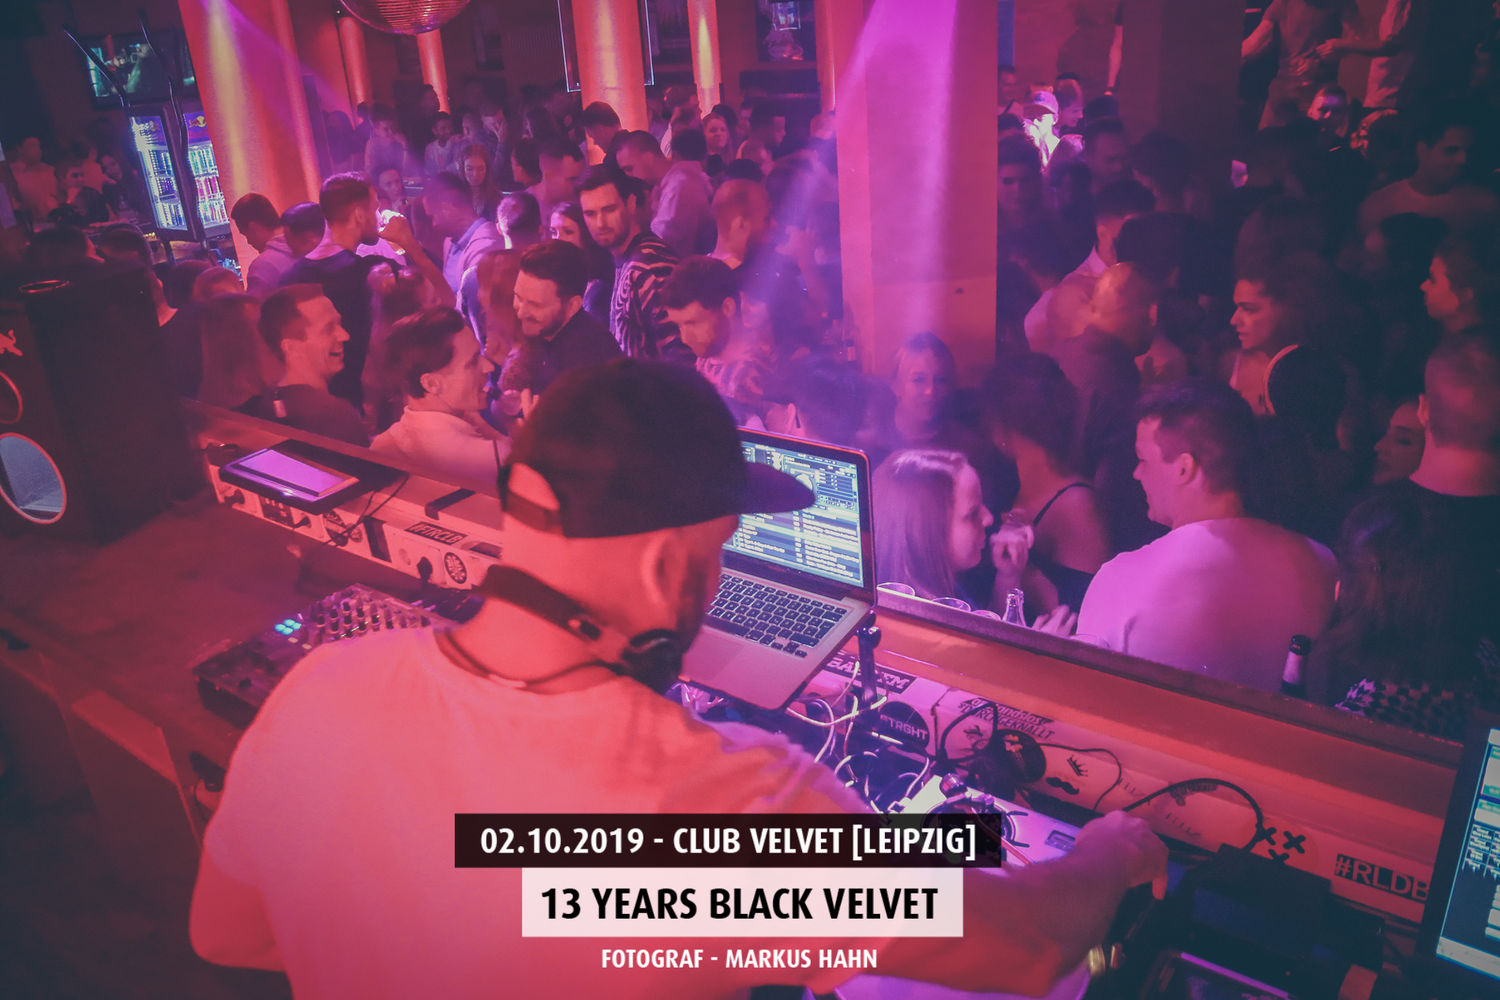 13-years-black-velvet-club-velvet-3-1